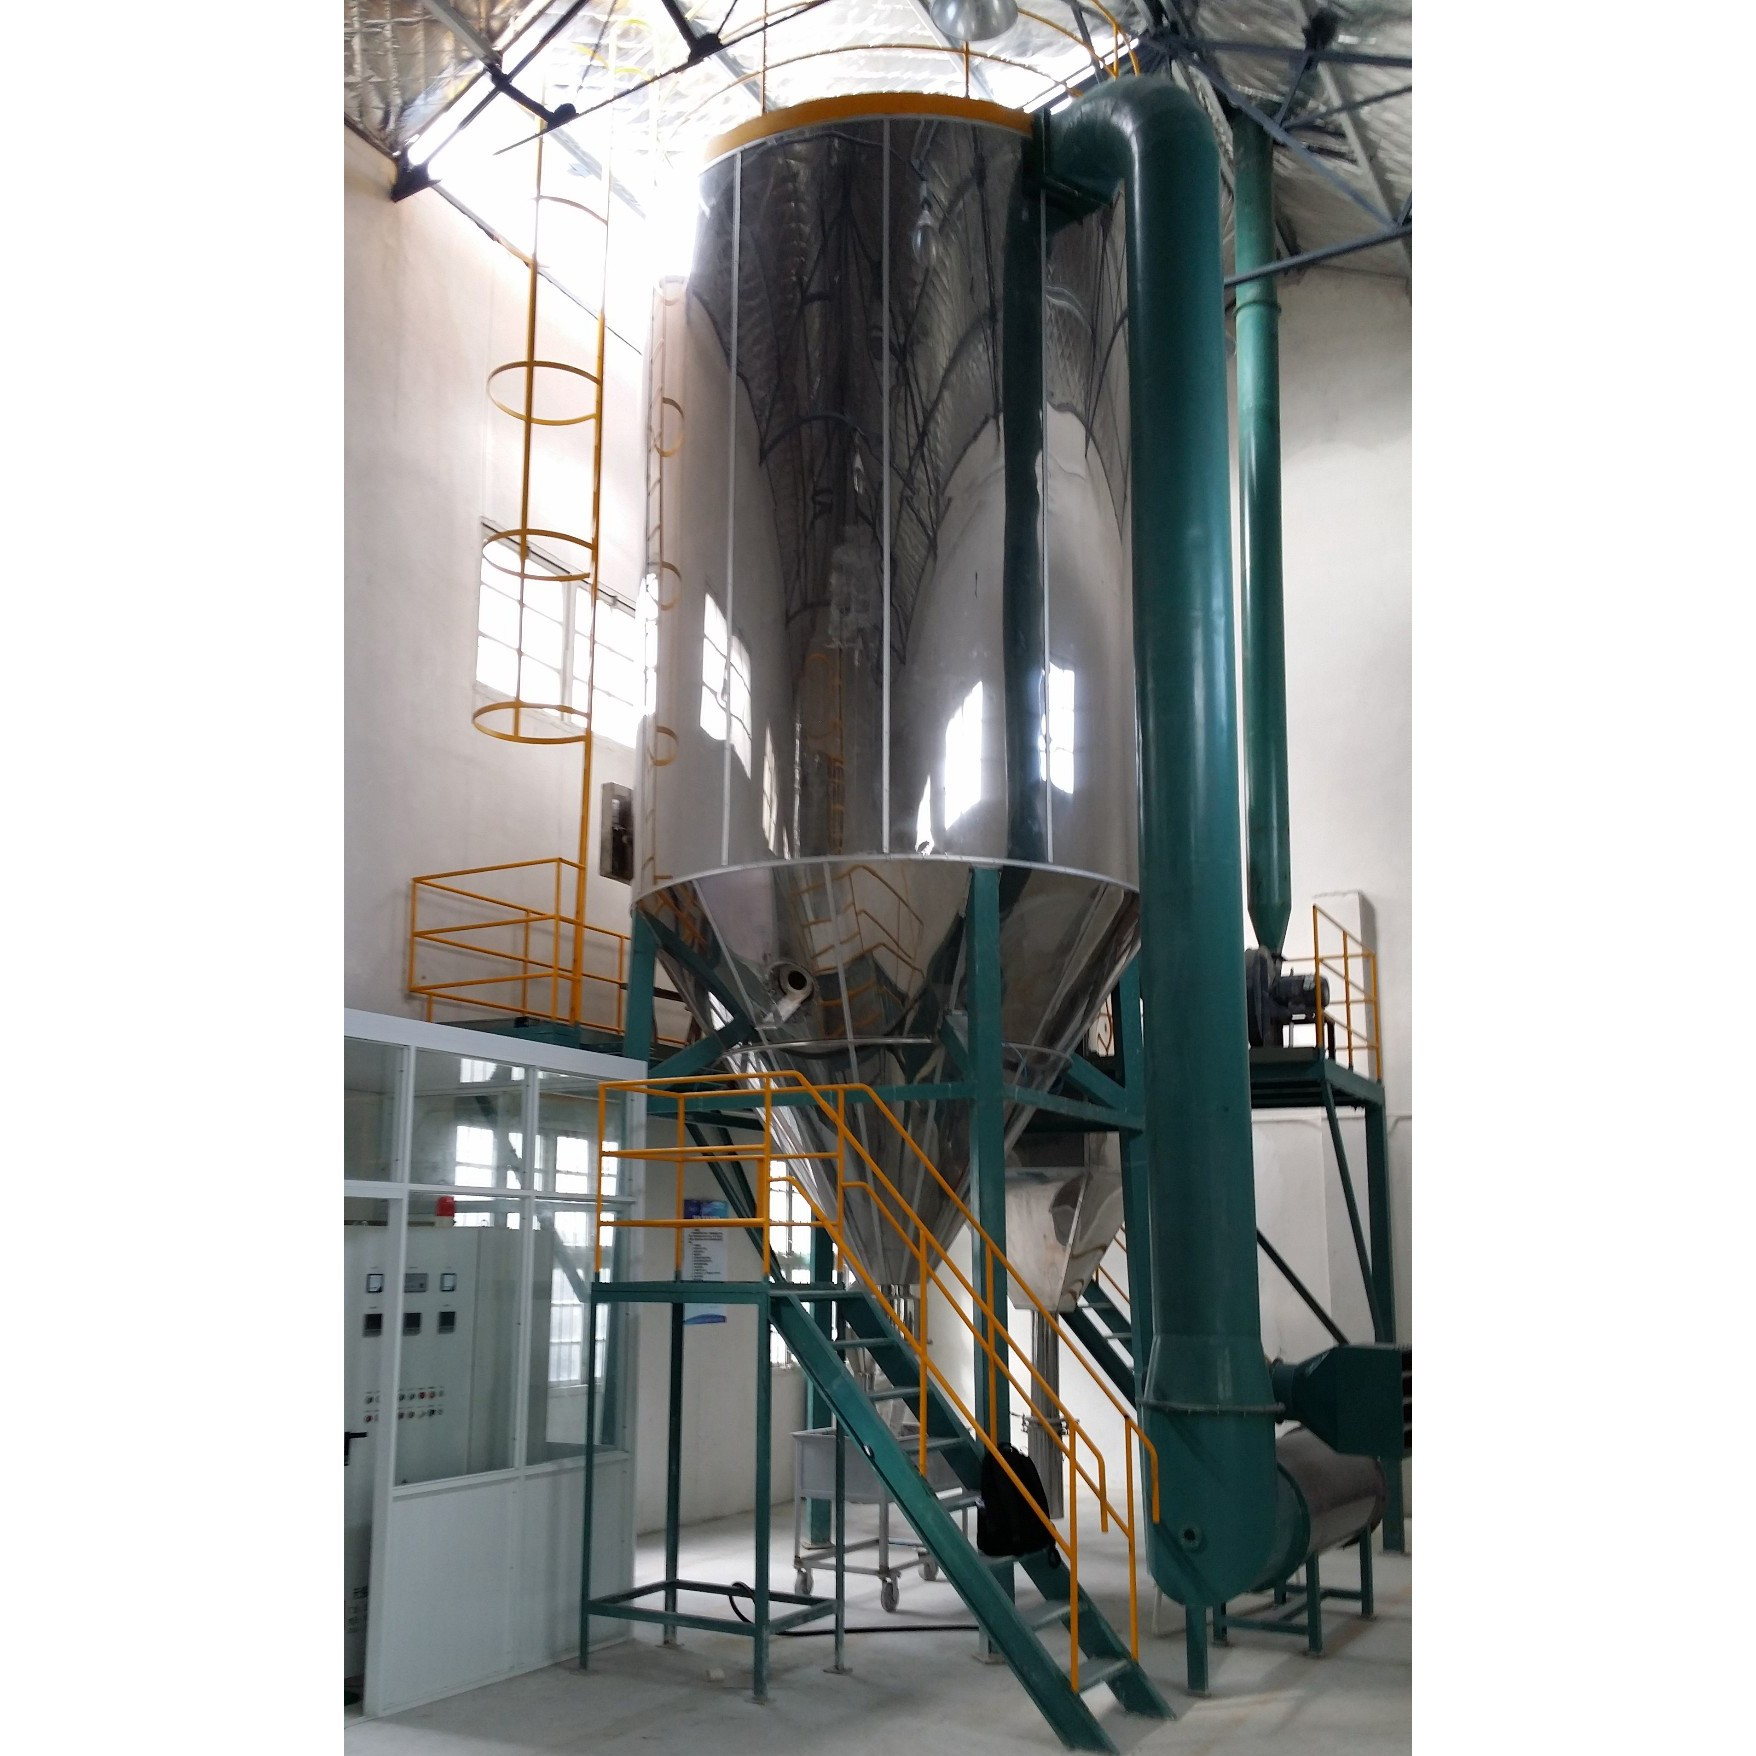 Kaolin Spray Dryer